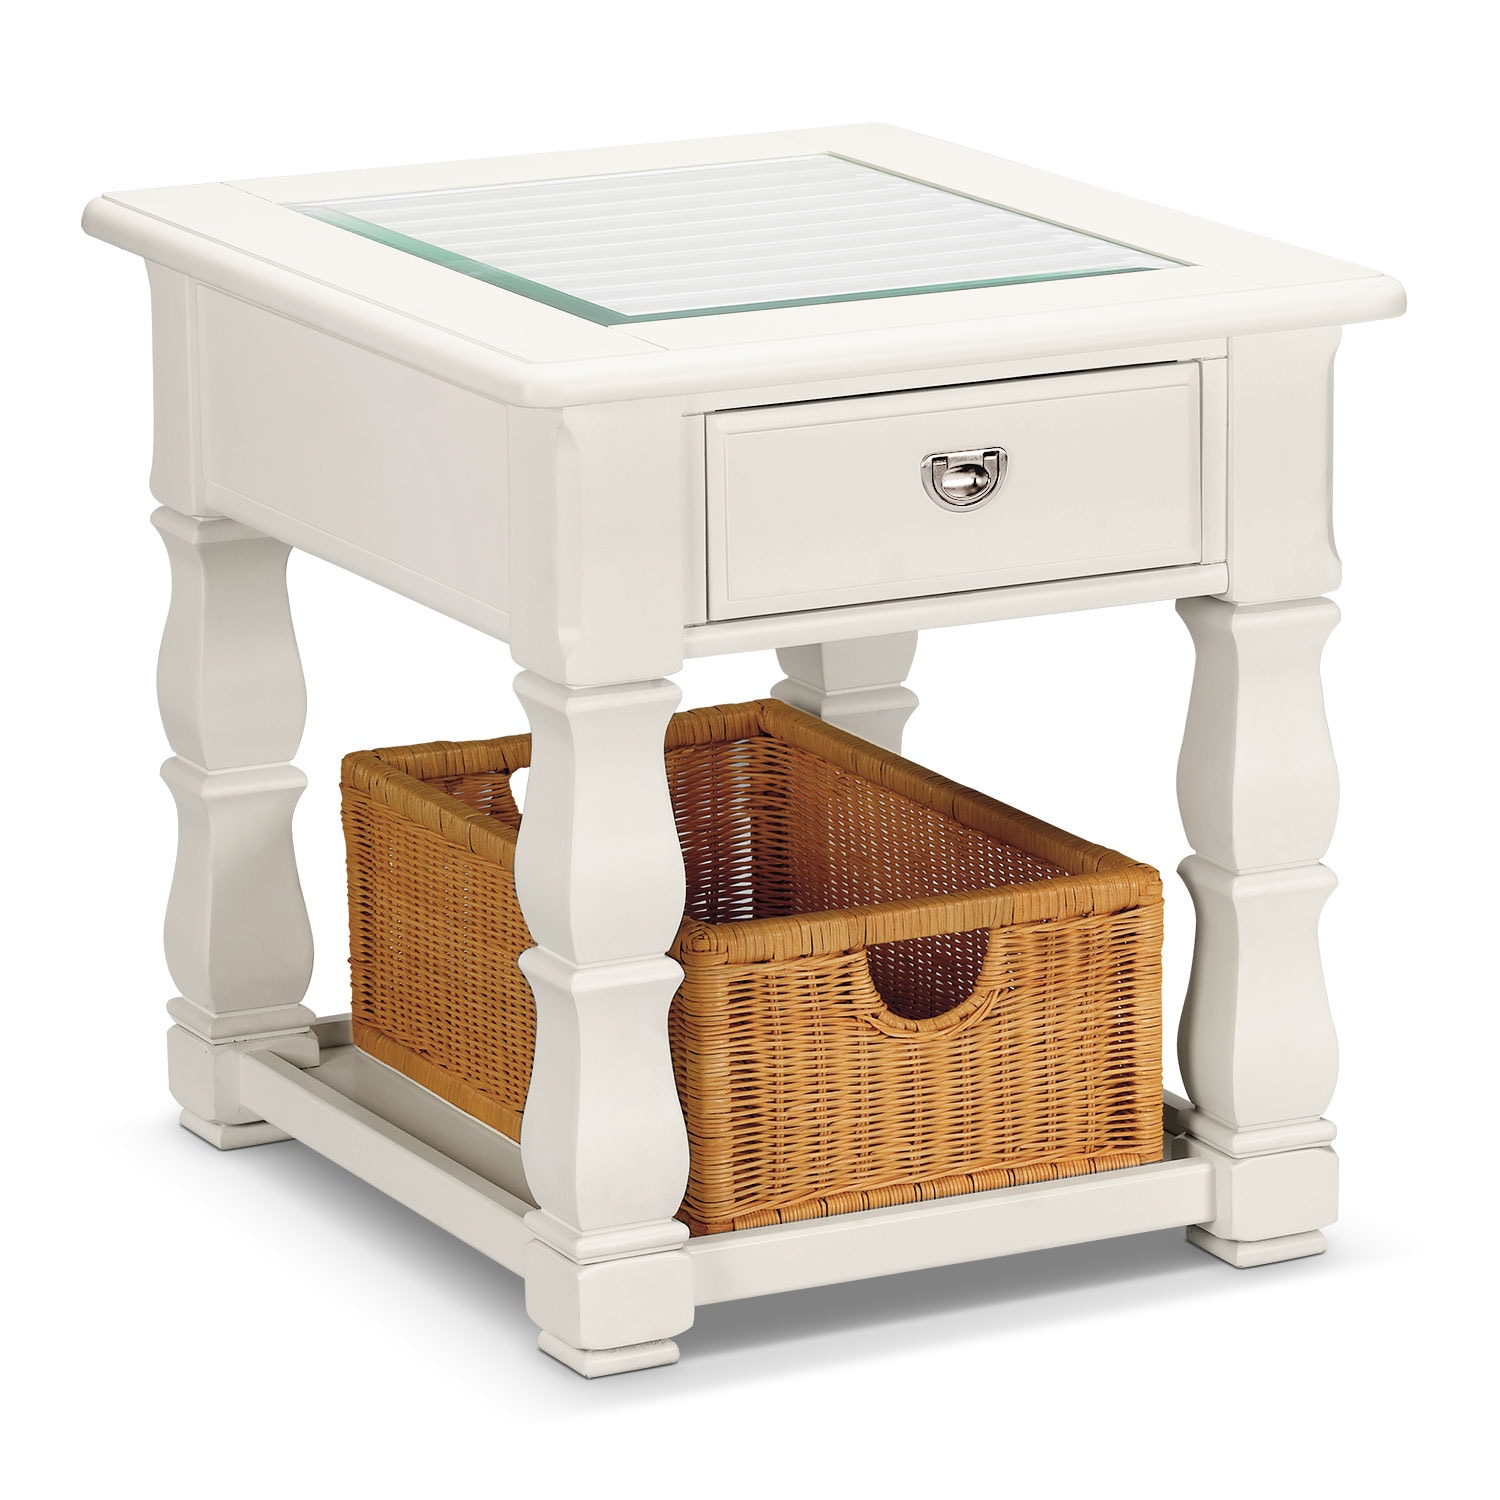 Plantation Cove End Table - White